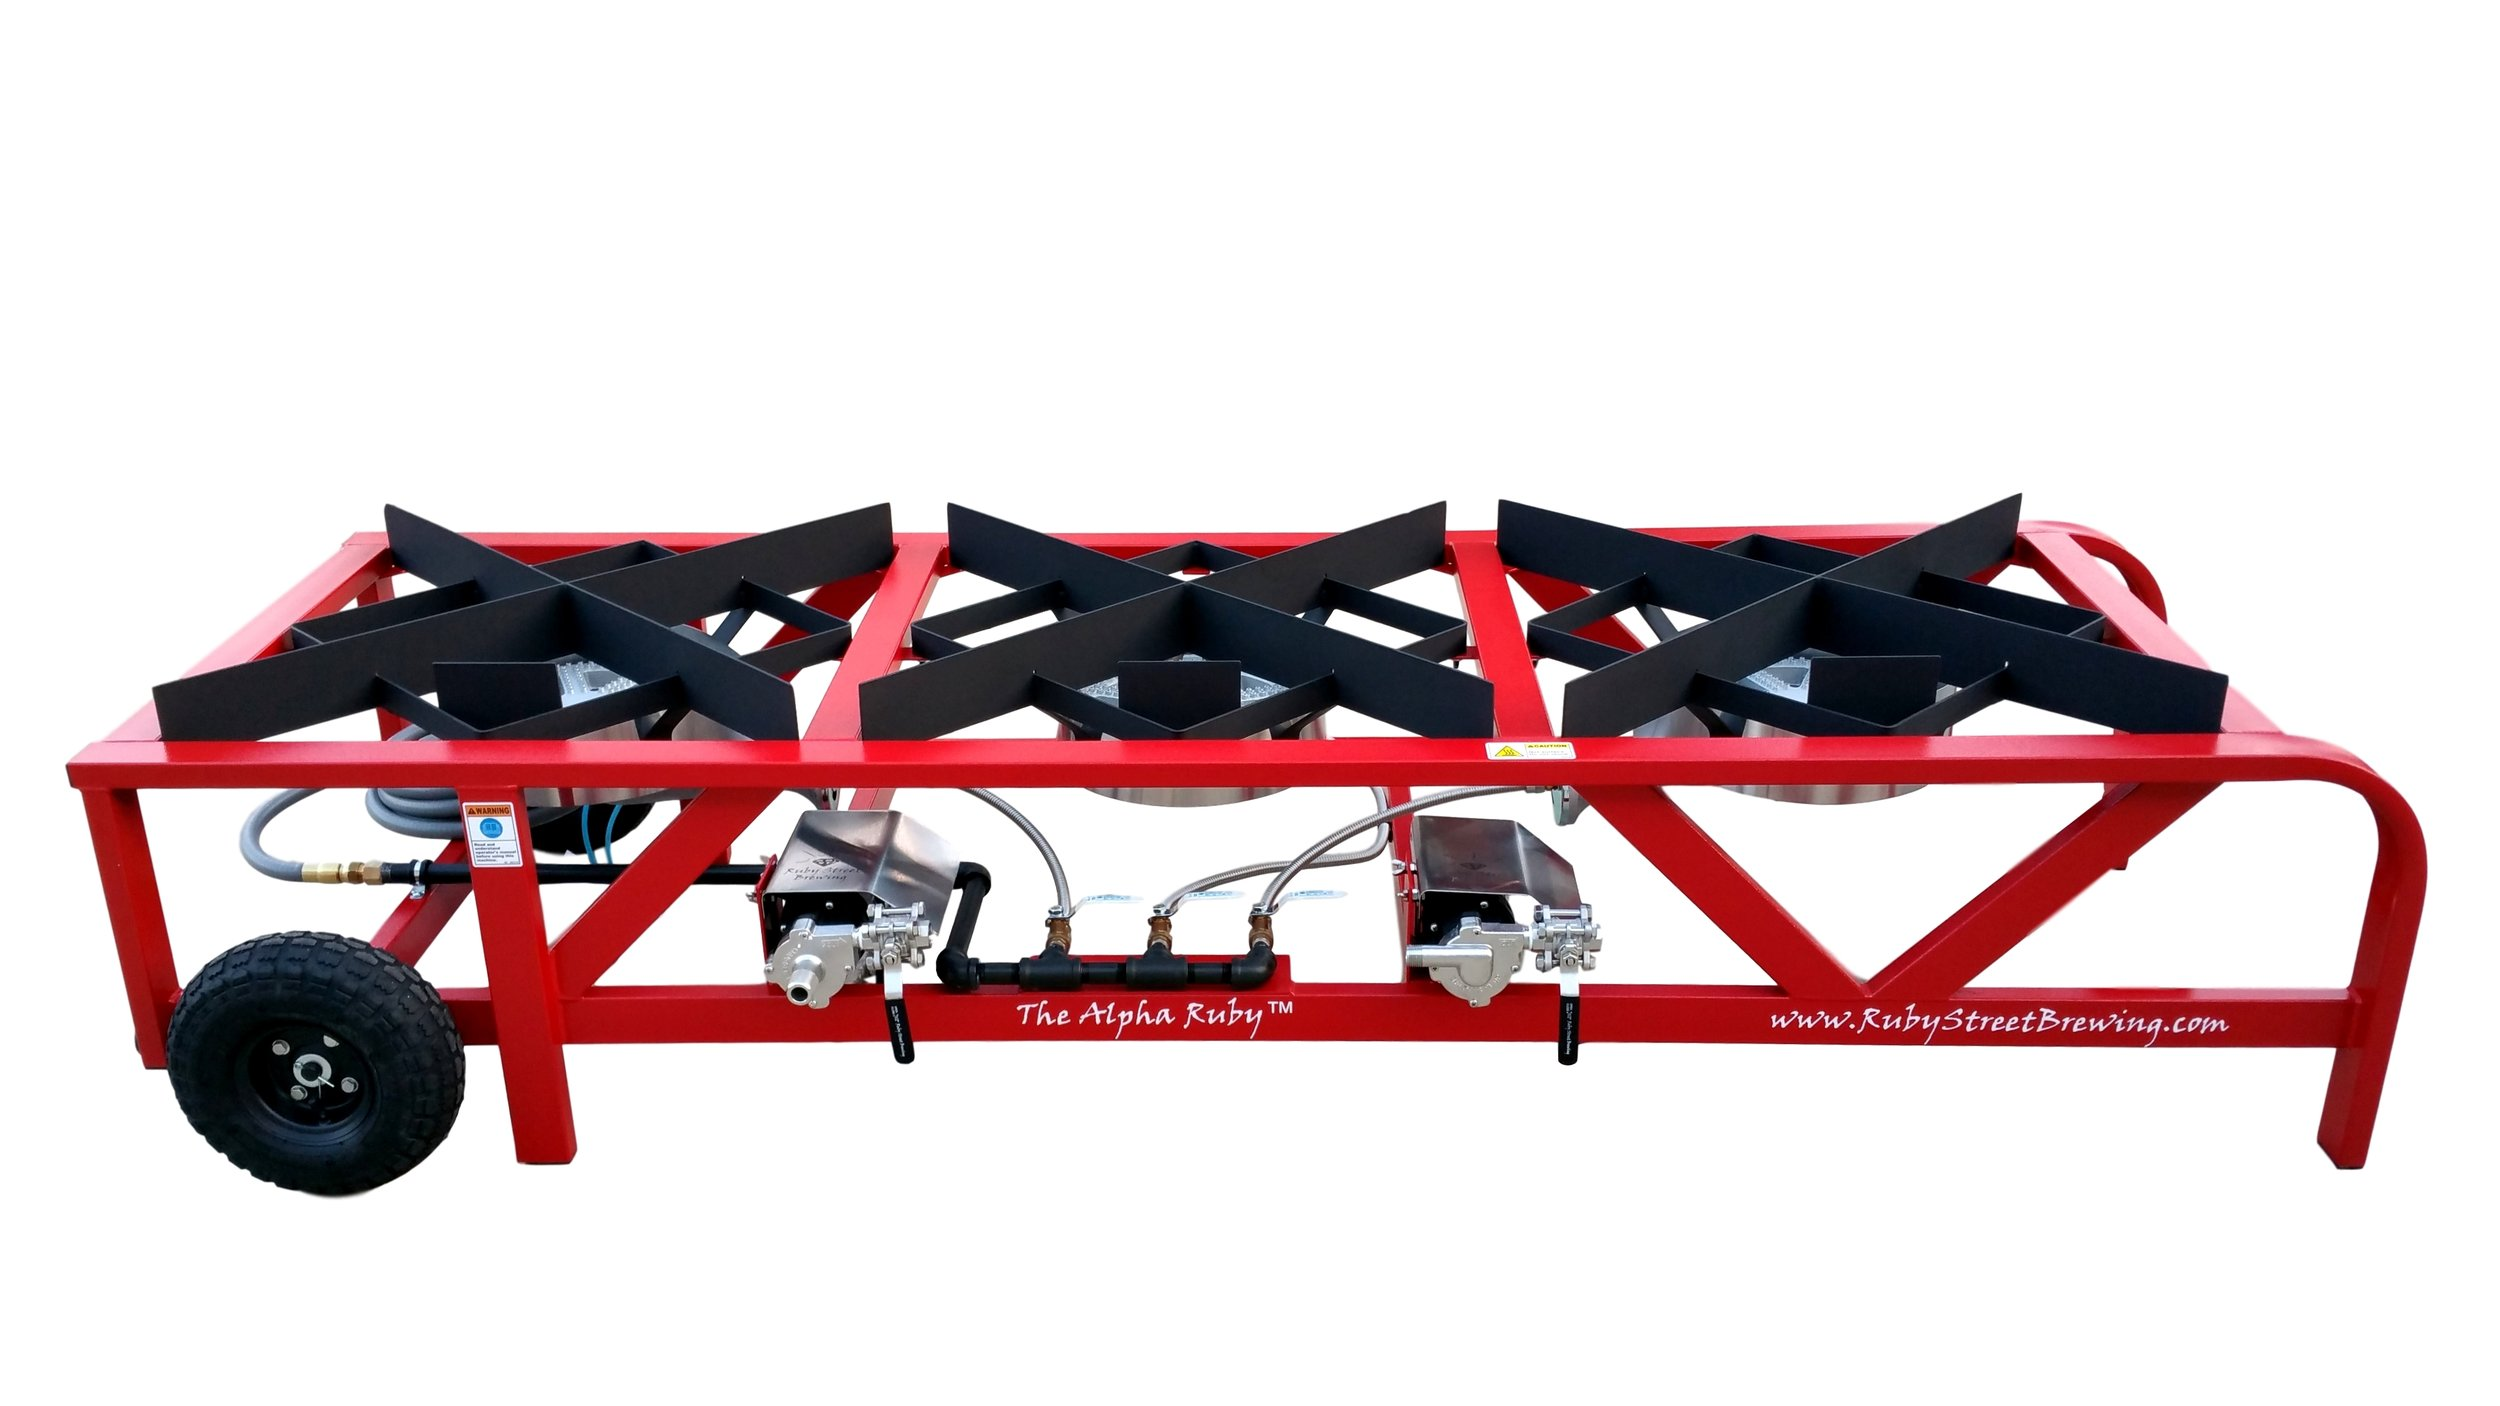 Alpha Ruby 1 BBL Frame Only (shown with optional pumps)